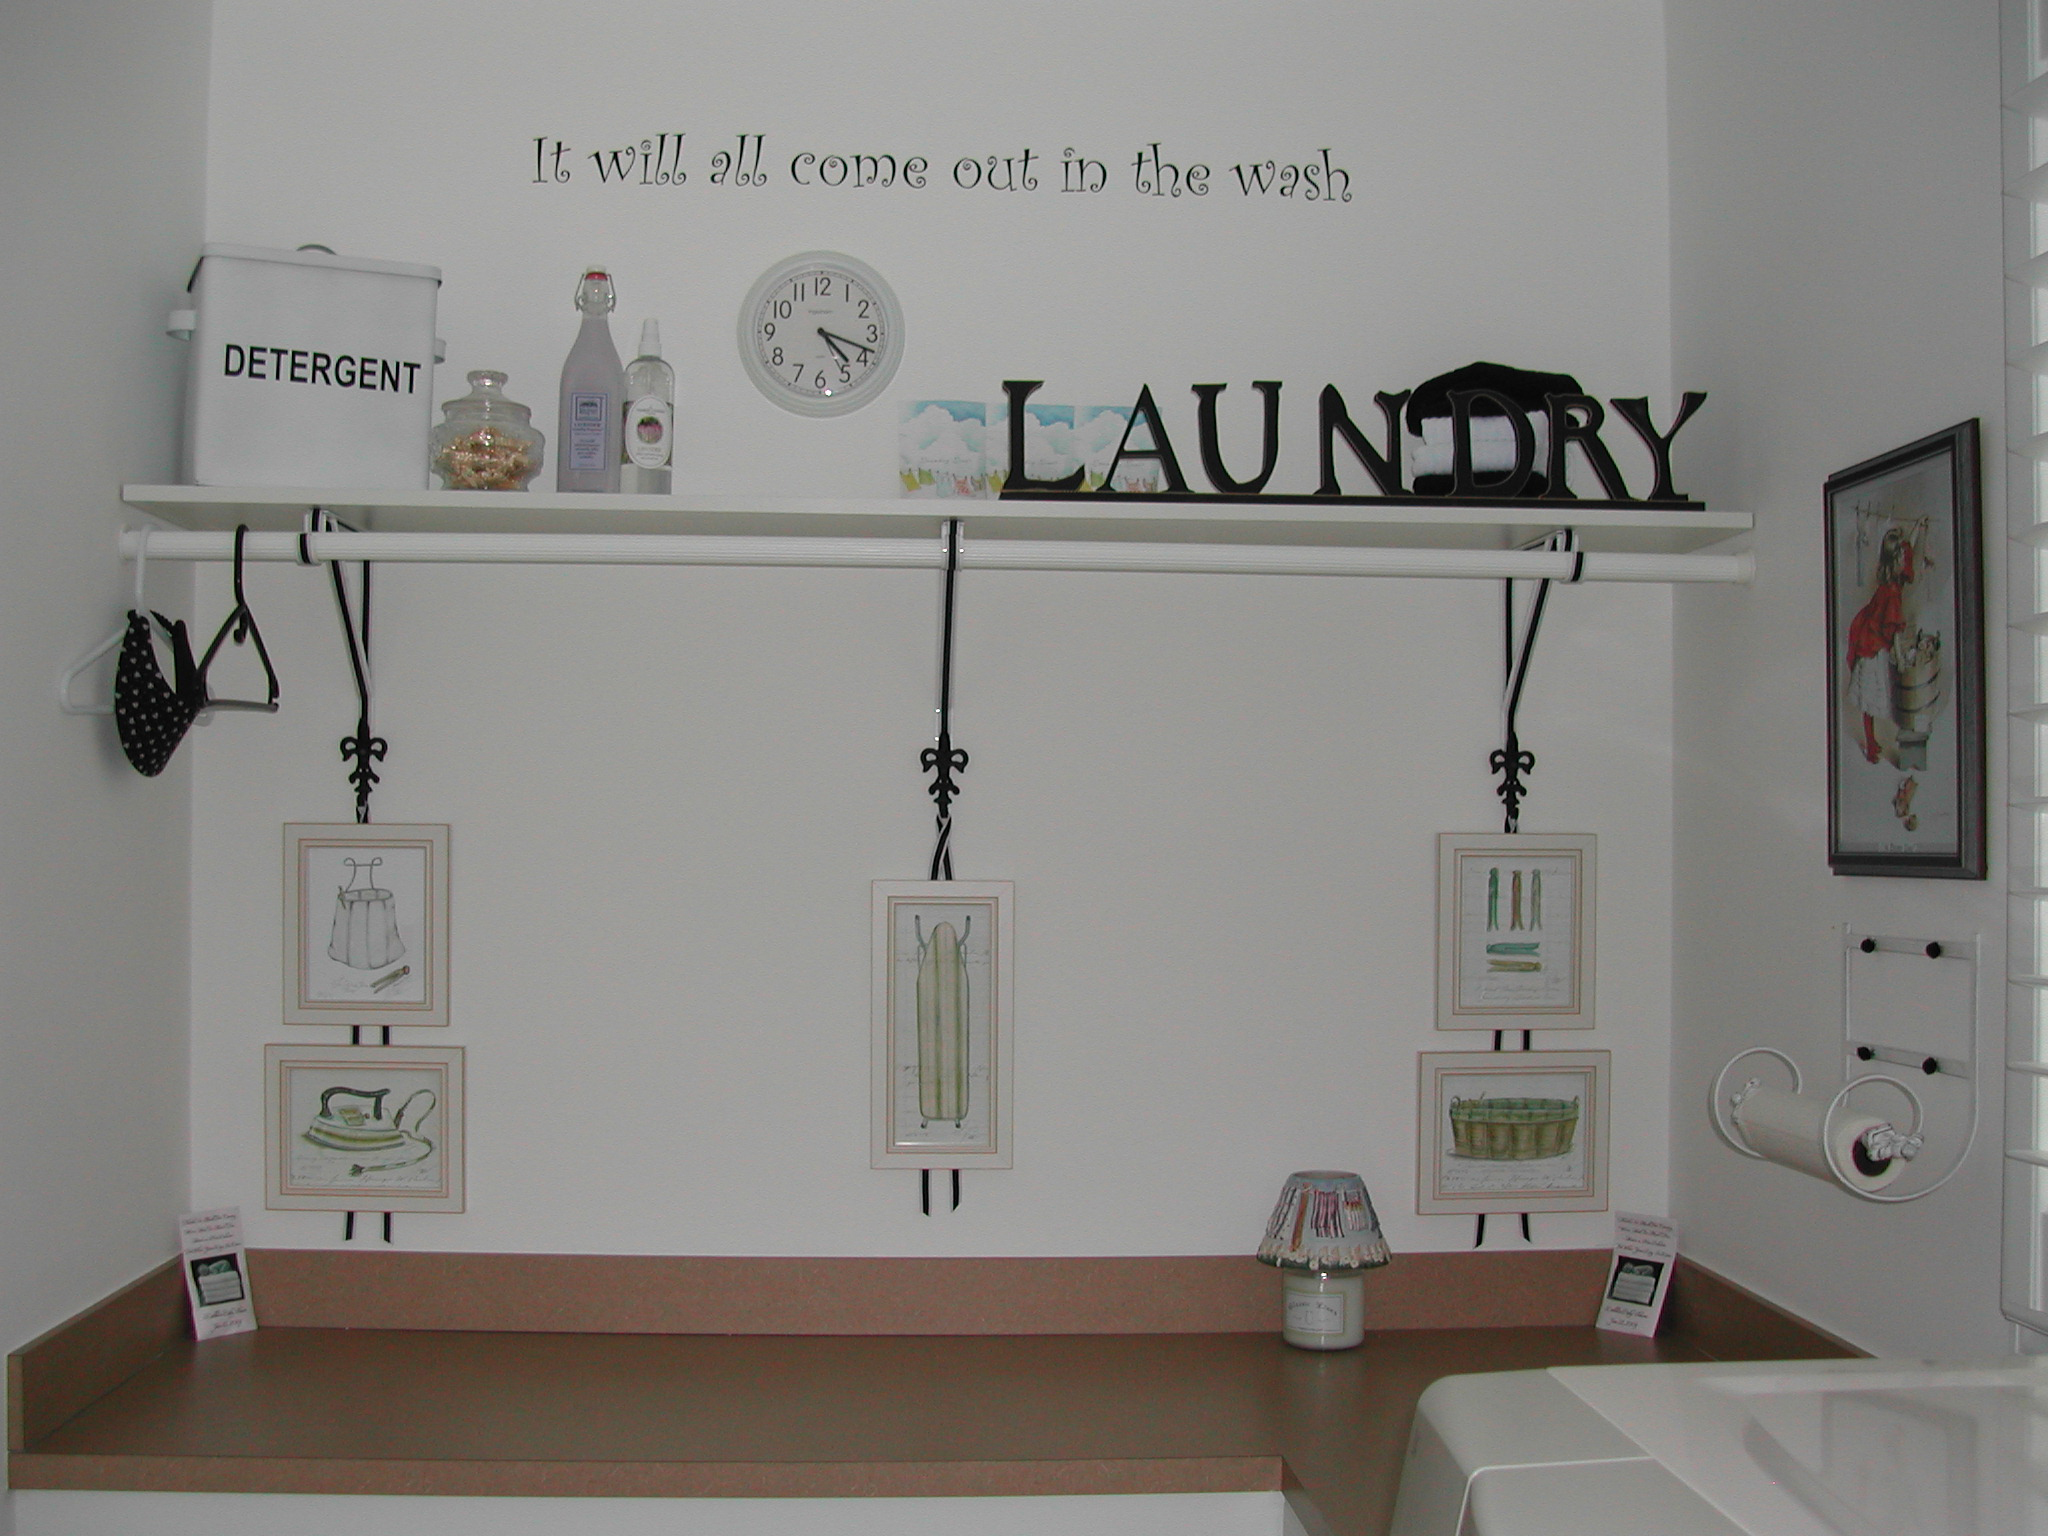 Best Laundry room Wall Lettering & Wall Decors on Laundry Decoration  id=85366